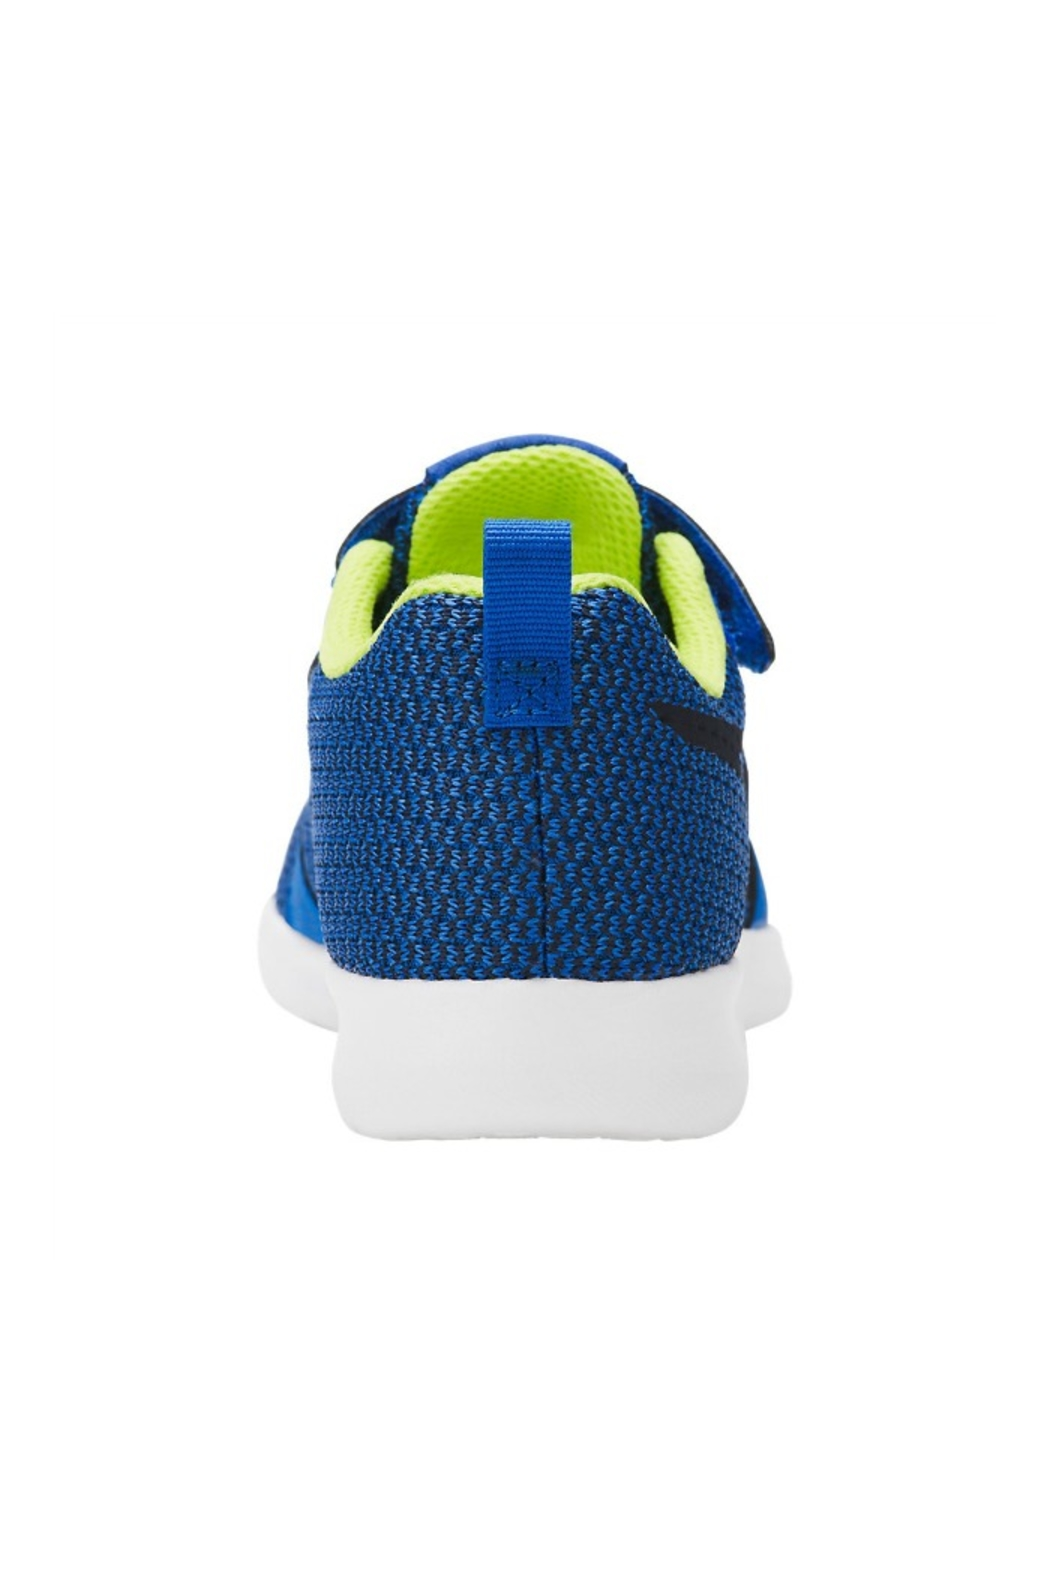 Asics KANMEI PS - Back Cropped Image